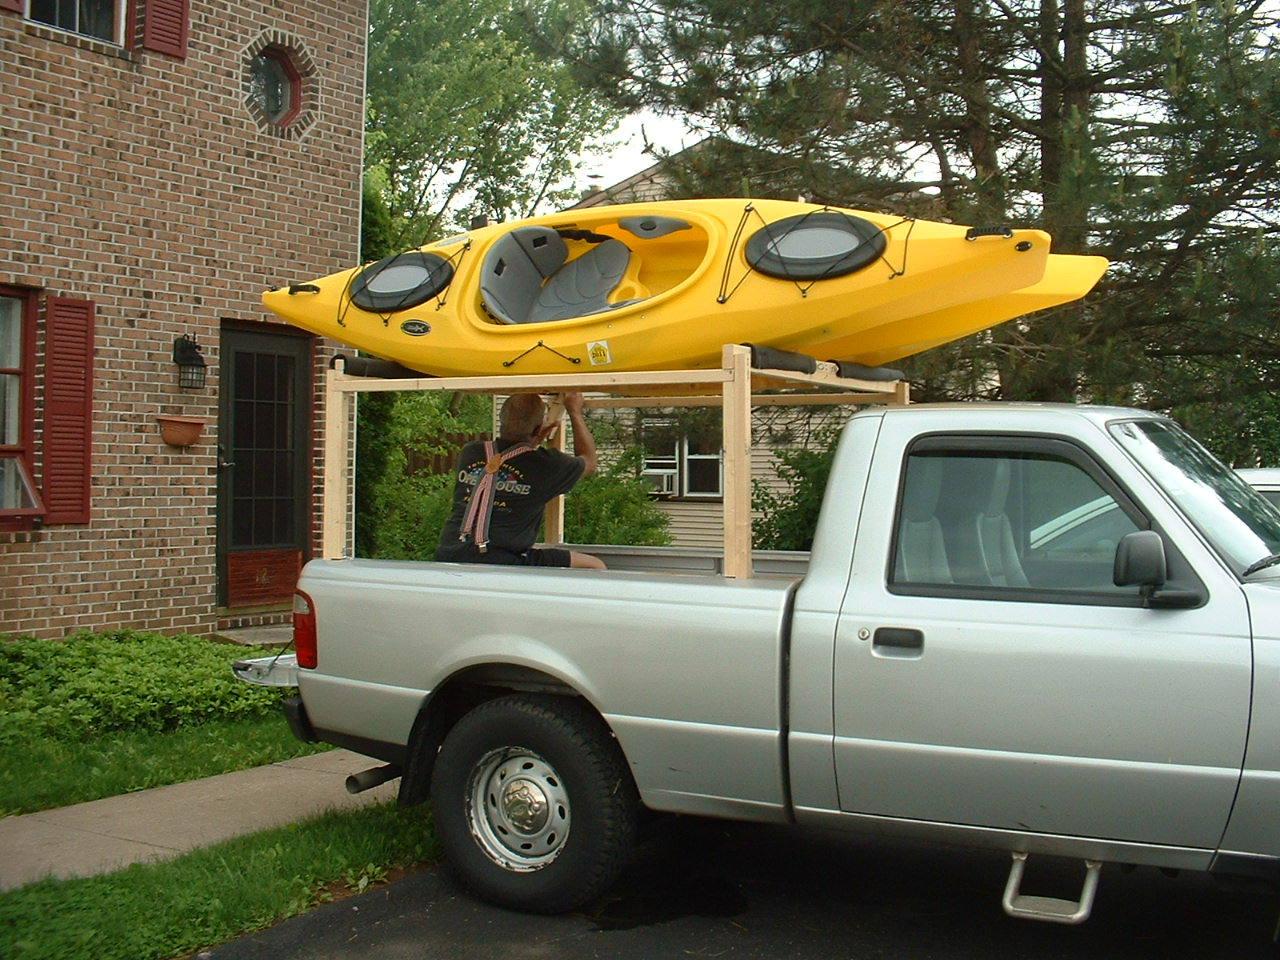 MadKayaker: Home made boat racks